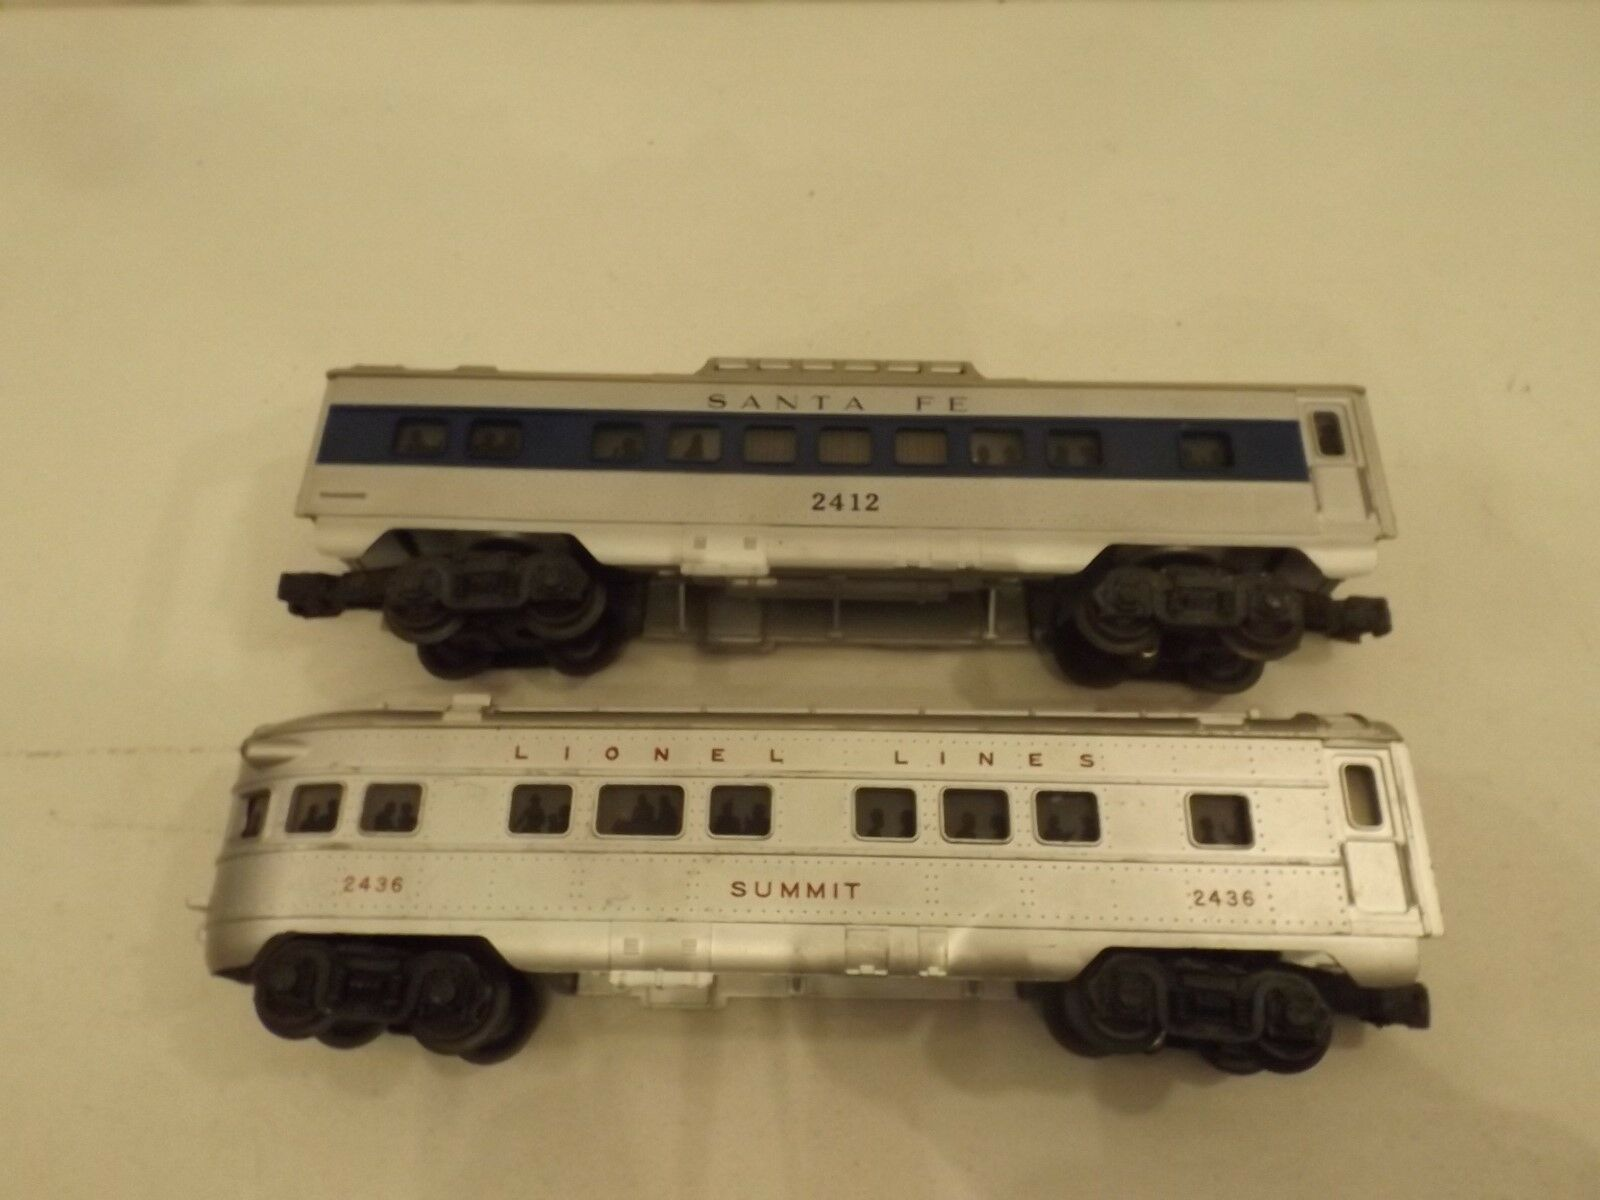 (2) O Lionel passenger cars, and